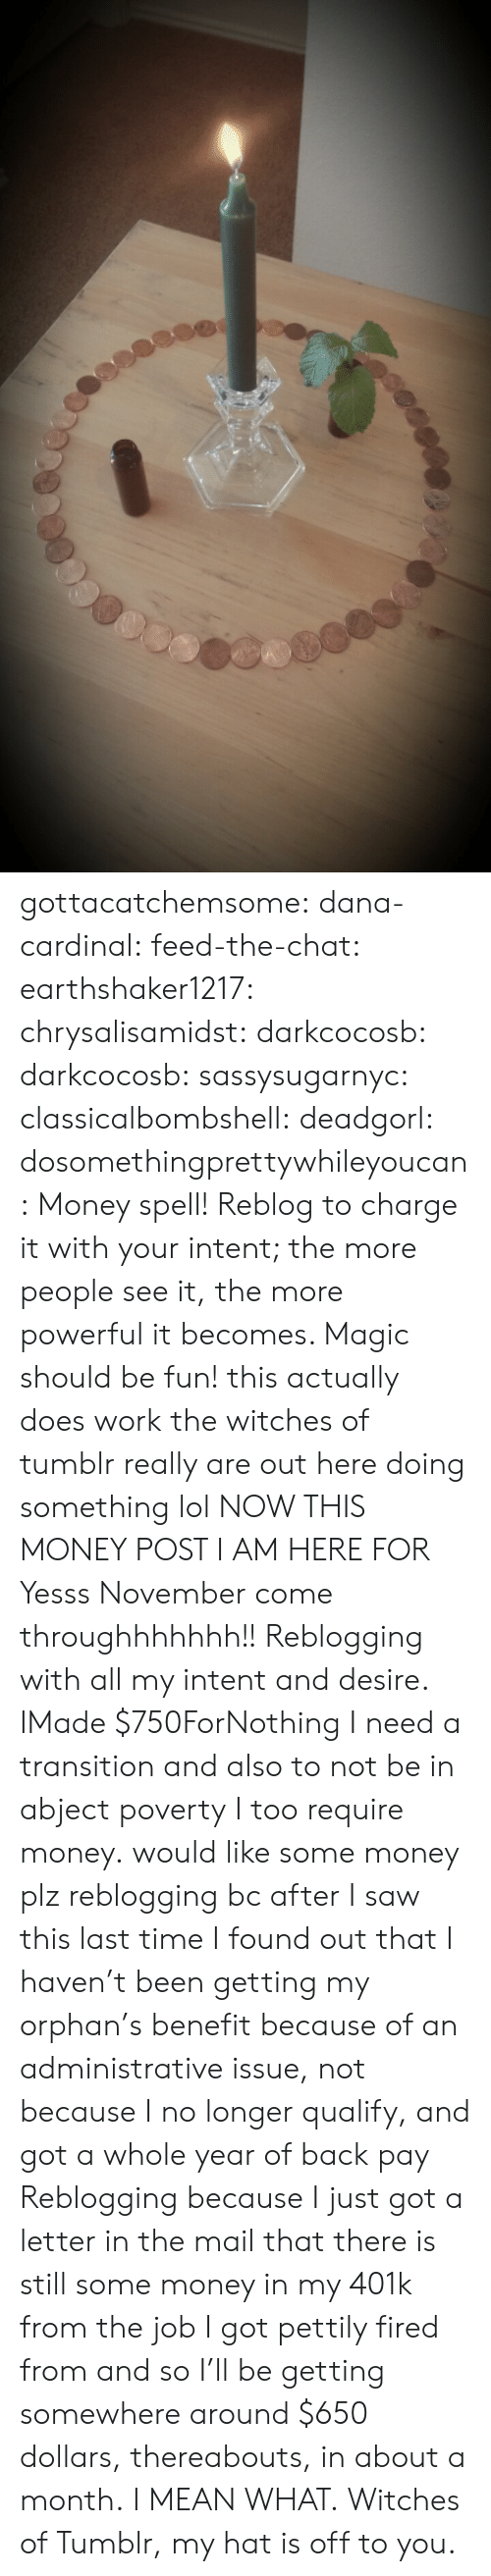 orphan: gottacatchemsome: dana-cardinal:  feed-the-chat:  earthshaker1217:  chrysalisamidst:  darkcocosb:  darkcocosb:  sassysugarnyc:  classicalbombshell:  deadgorl:  dosomethingprettywhileyoucan:  Money spell! Reblog to charge it with your intent; the more people see it, the more powerful it becomes. Magic should be fun!  this actually does work the witches of tumblr really are out here doing something lol  NOW THIS MONEY POST I AM HERE FOR  Yesss November come throughhhhhhh!!  Reblogging with all my intent and desire.  IMade $750ForNothing  I need a transition and also to not be in abject poverty  I too require money.  would like some money plz  reblogging bc after I saw this last time I found out that I haven't been getting my orphan's benefit because of an administrative issue, not because I no longer qualify, and got a whole year of back pay  Reblogging because I just got a letter in the mail that there is still some money in my 401k from the job I got pettily fired from and so I'll be getting somewhere around $650 dollars, thereabouts, in about a month. I MEAN WHAT. Witches of Tumblr, my hat is off to you.